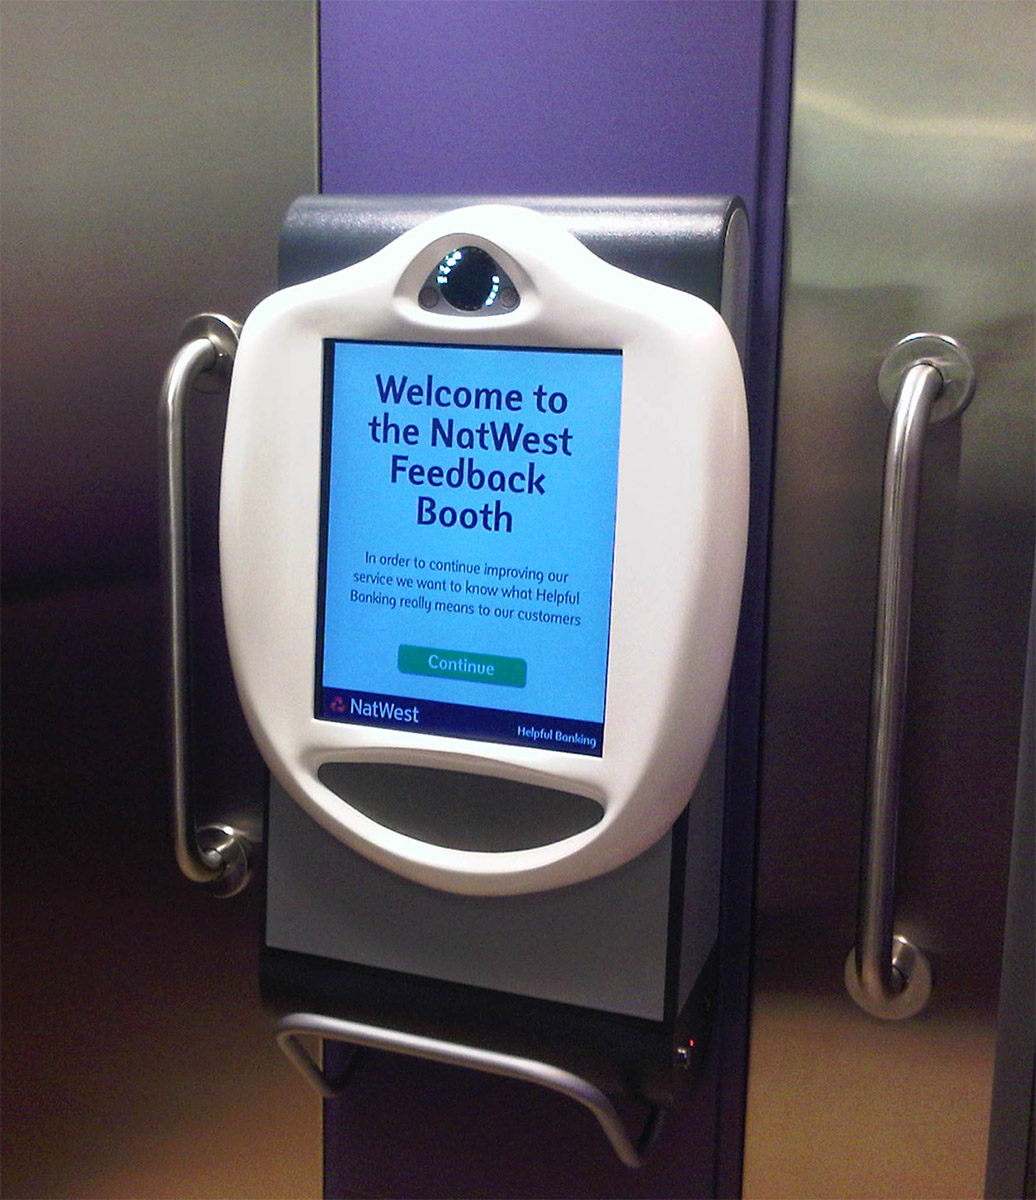 NatWest Feedback Booth using Wall Mount VideoKiosk